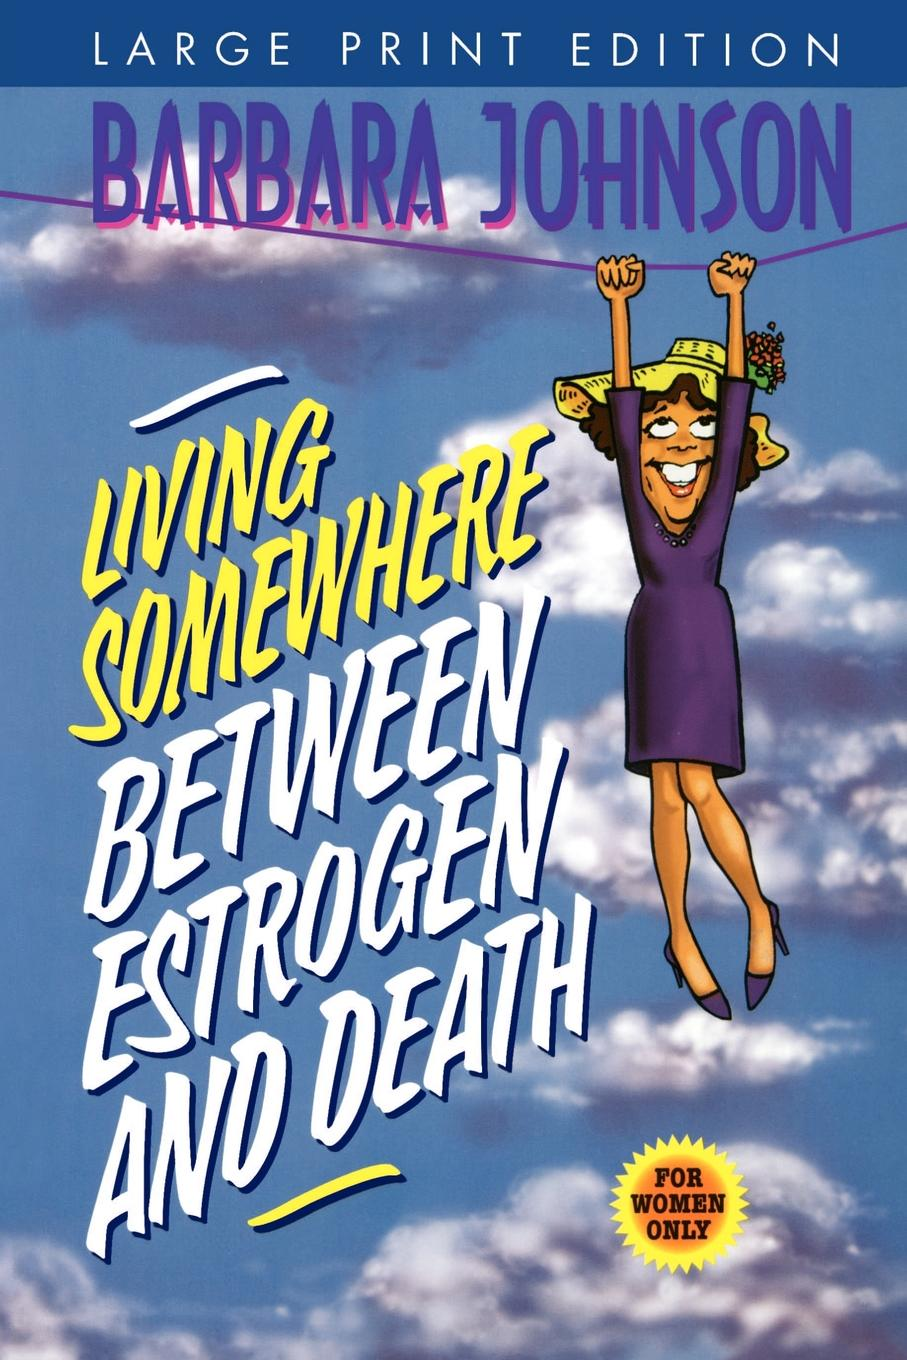 Barbara Johnson Living Somewhere Between Estrogen and Death living in his glorious presence